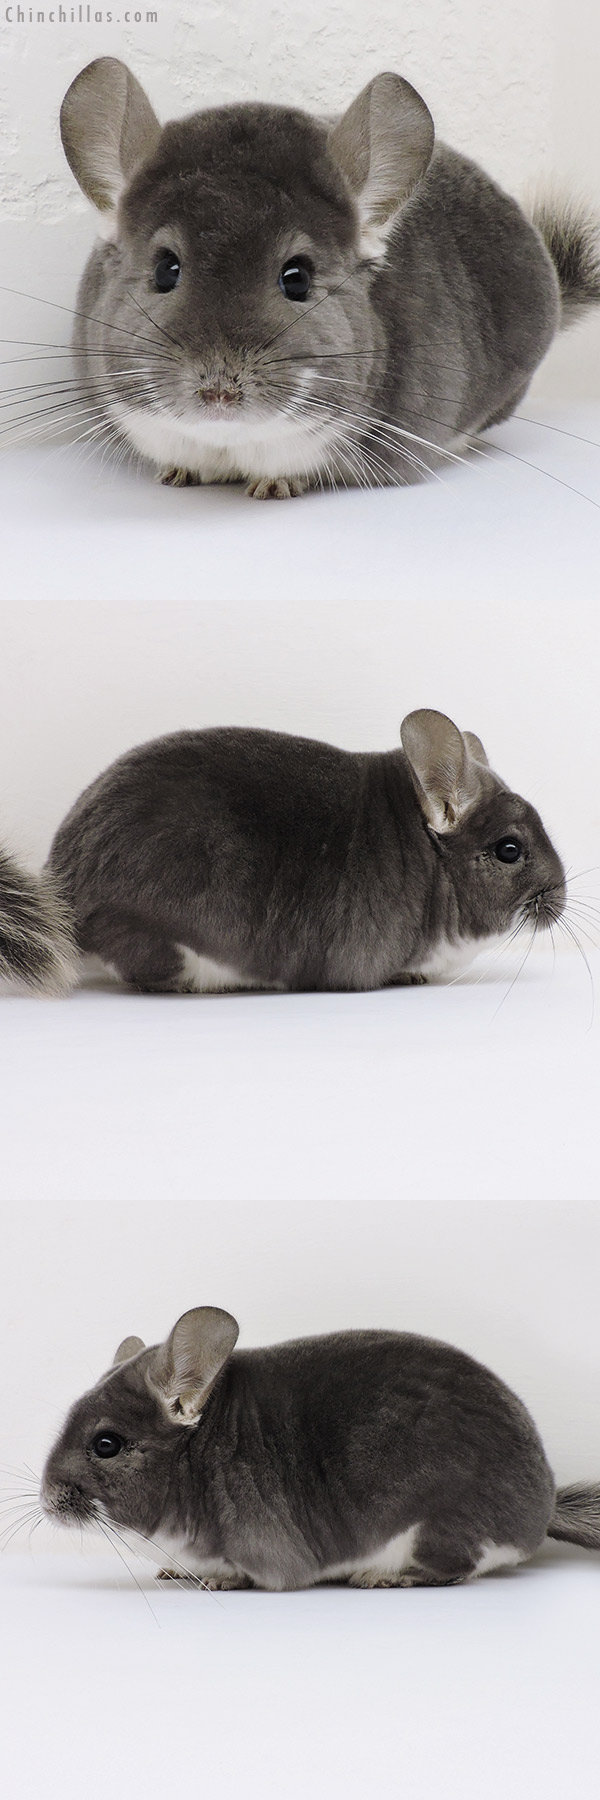 16131 Herd Improvement Quality Violet Male Chinchilla